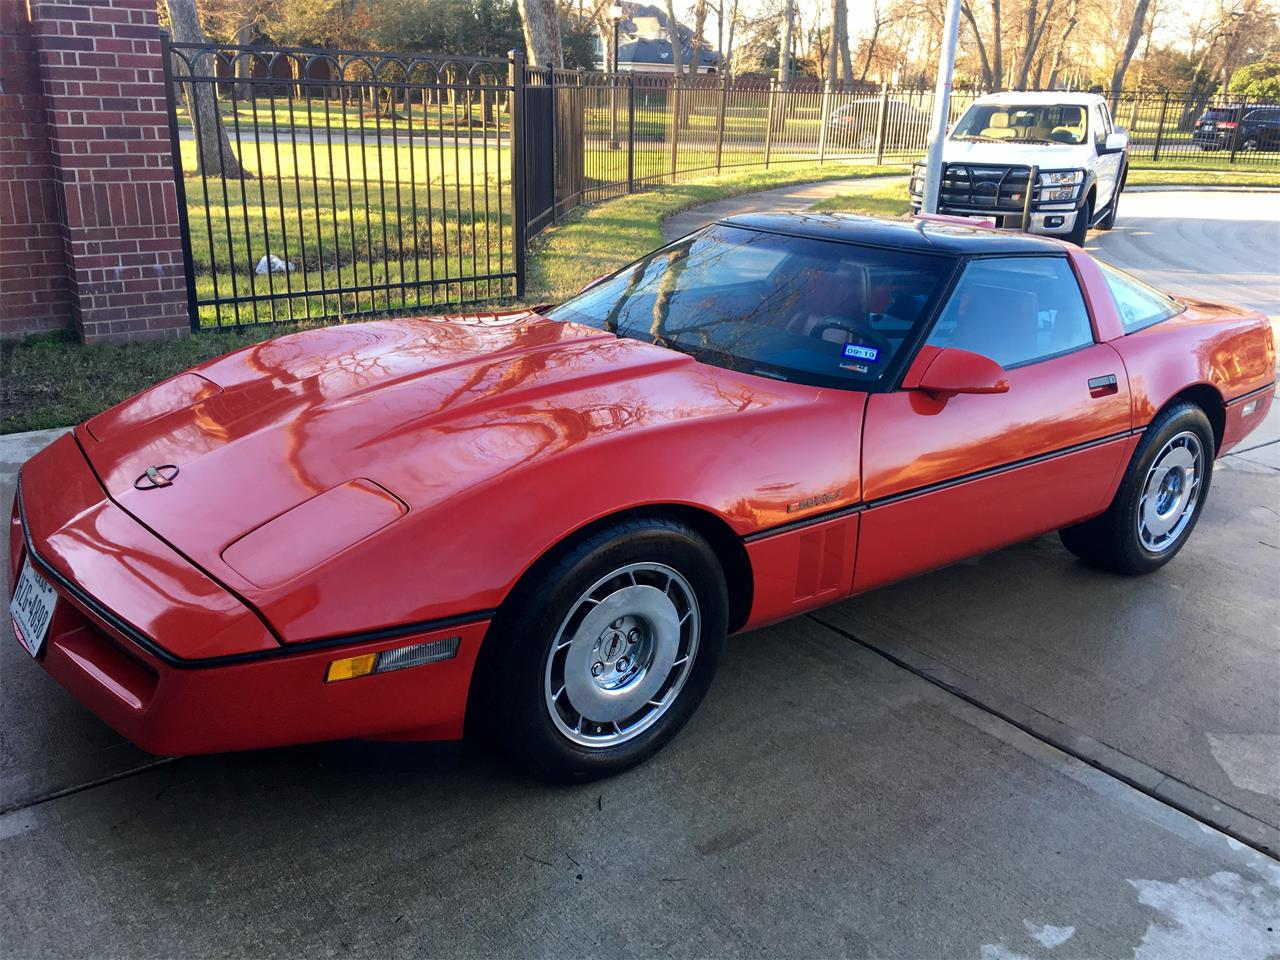 C4 Corvette For Sale | Best Upcoming Cars Reviews